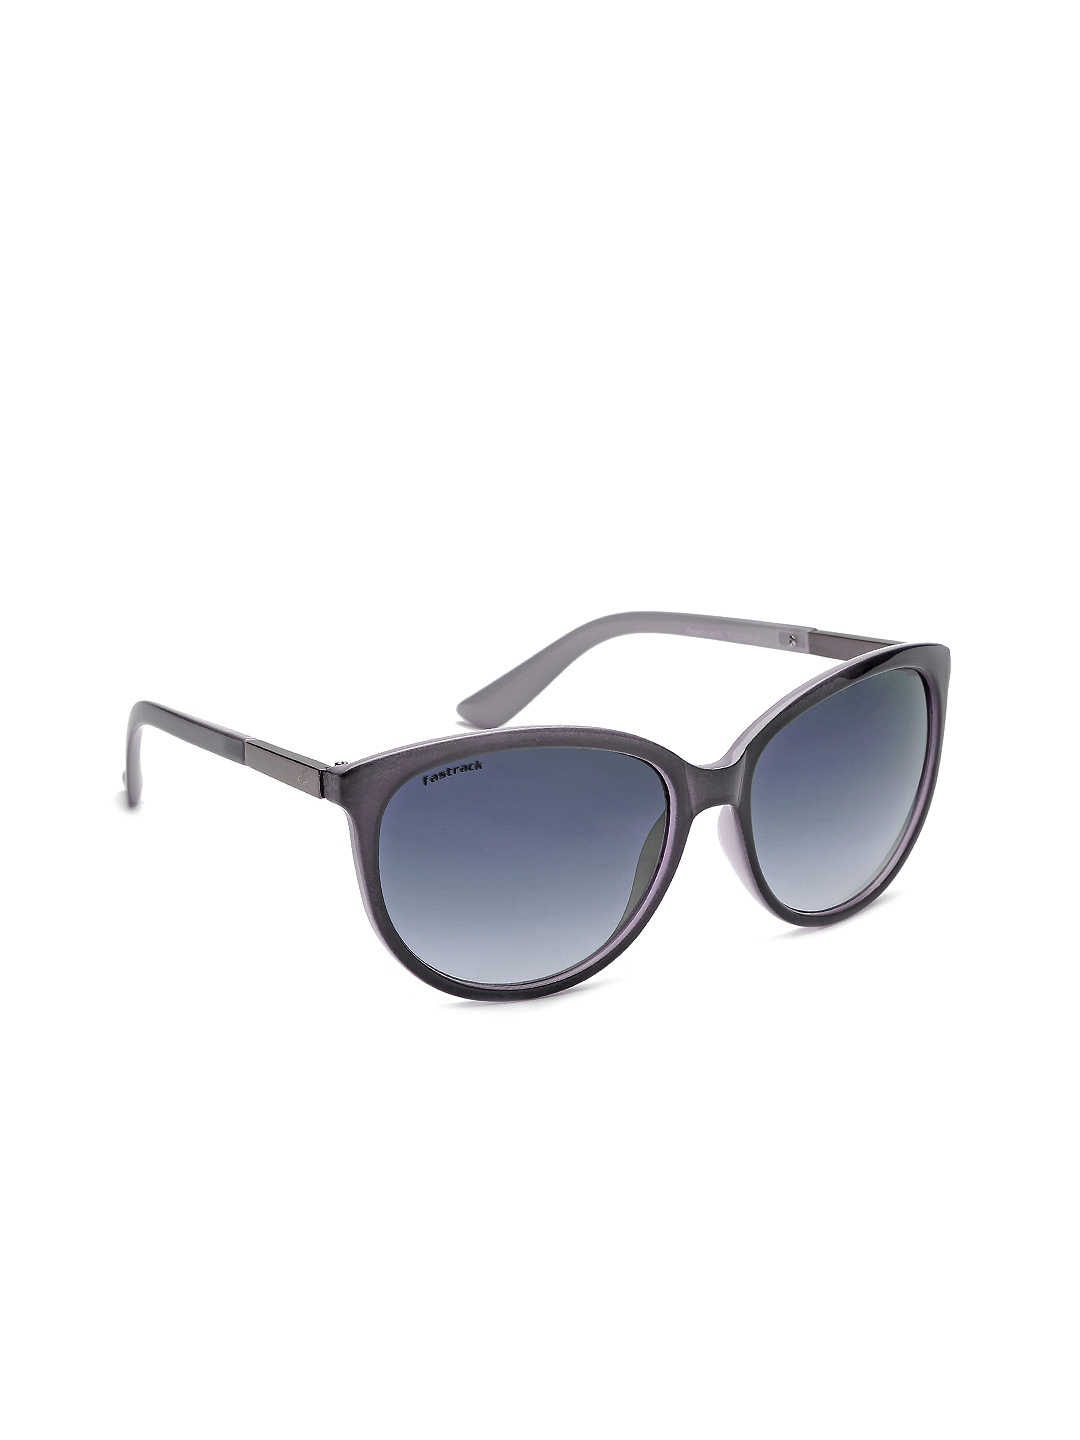 Fastrack Sunglasses For Womens With Prices | Louisiana ...